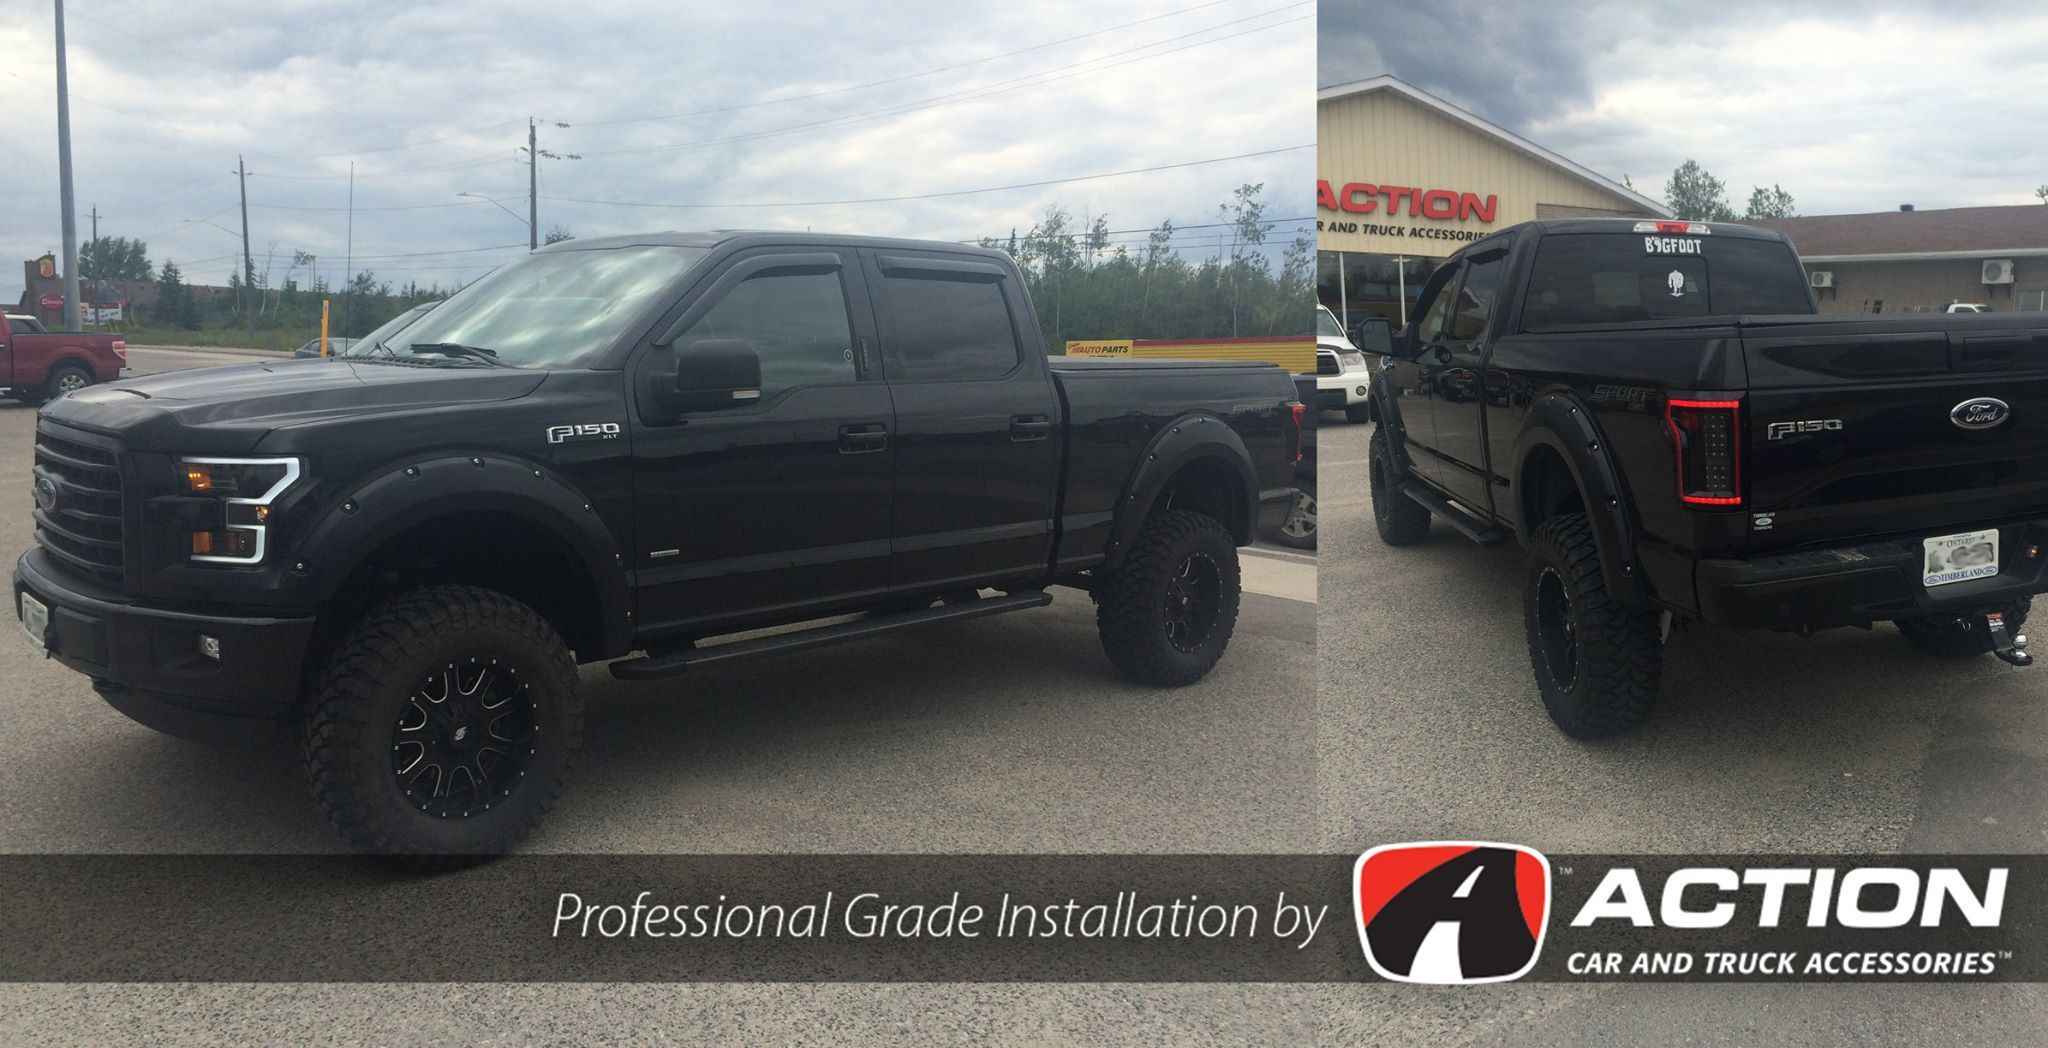 Take a look at this Beautiful Ford F150 completed by our